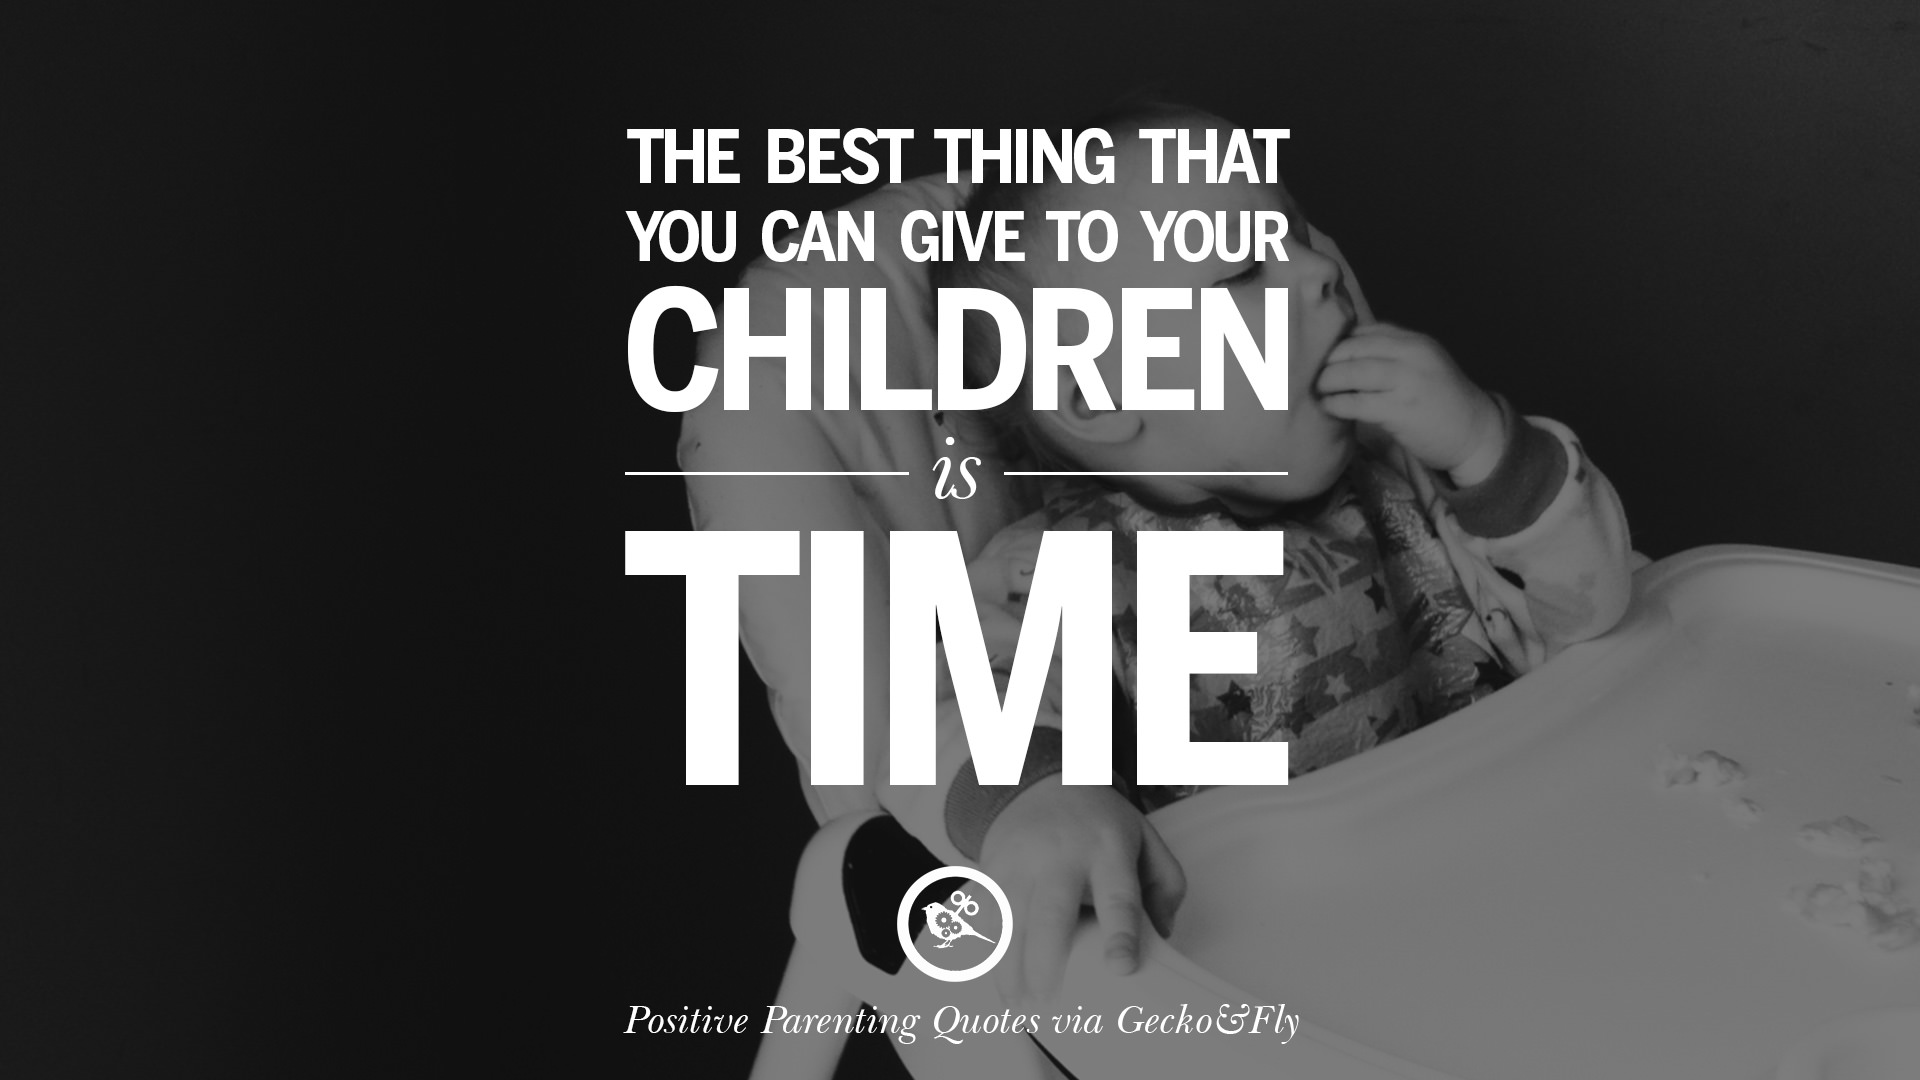 Positive Parenting Quotes. The Best Thing That You Can Give To Your  Children Is Time.